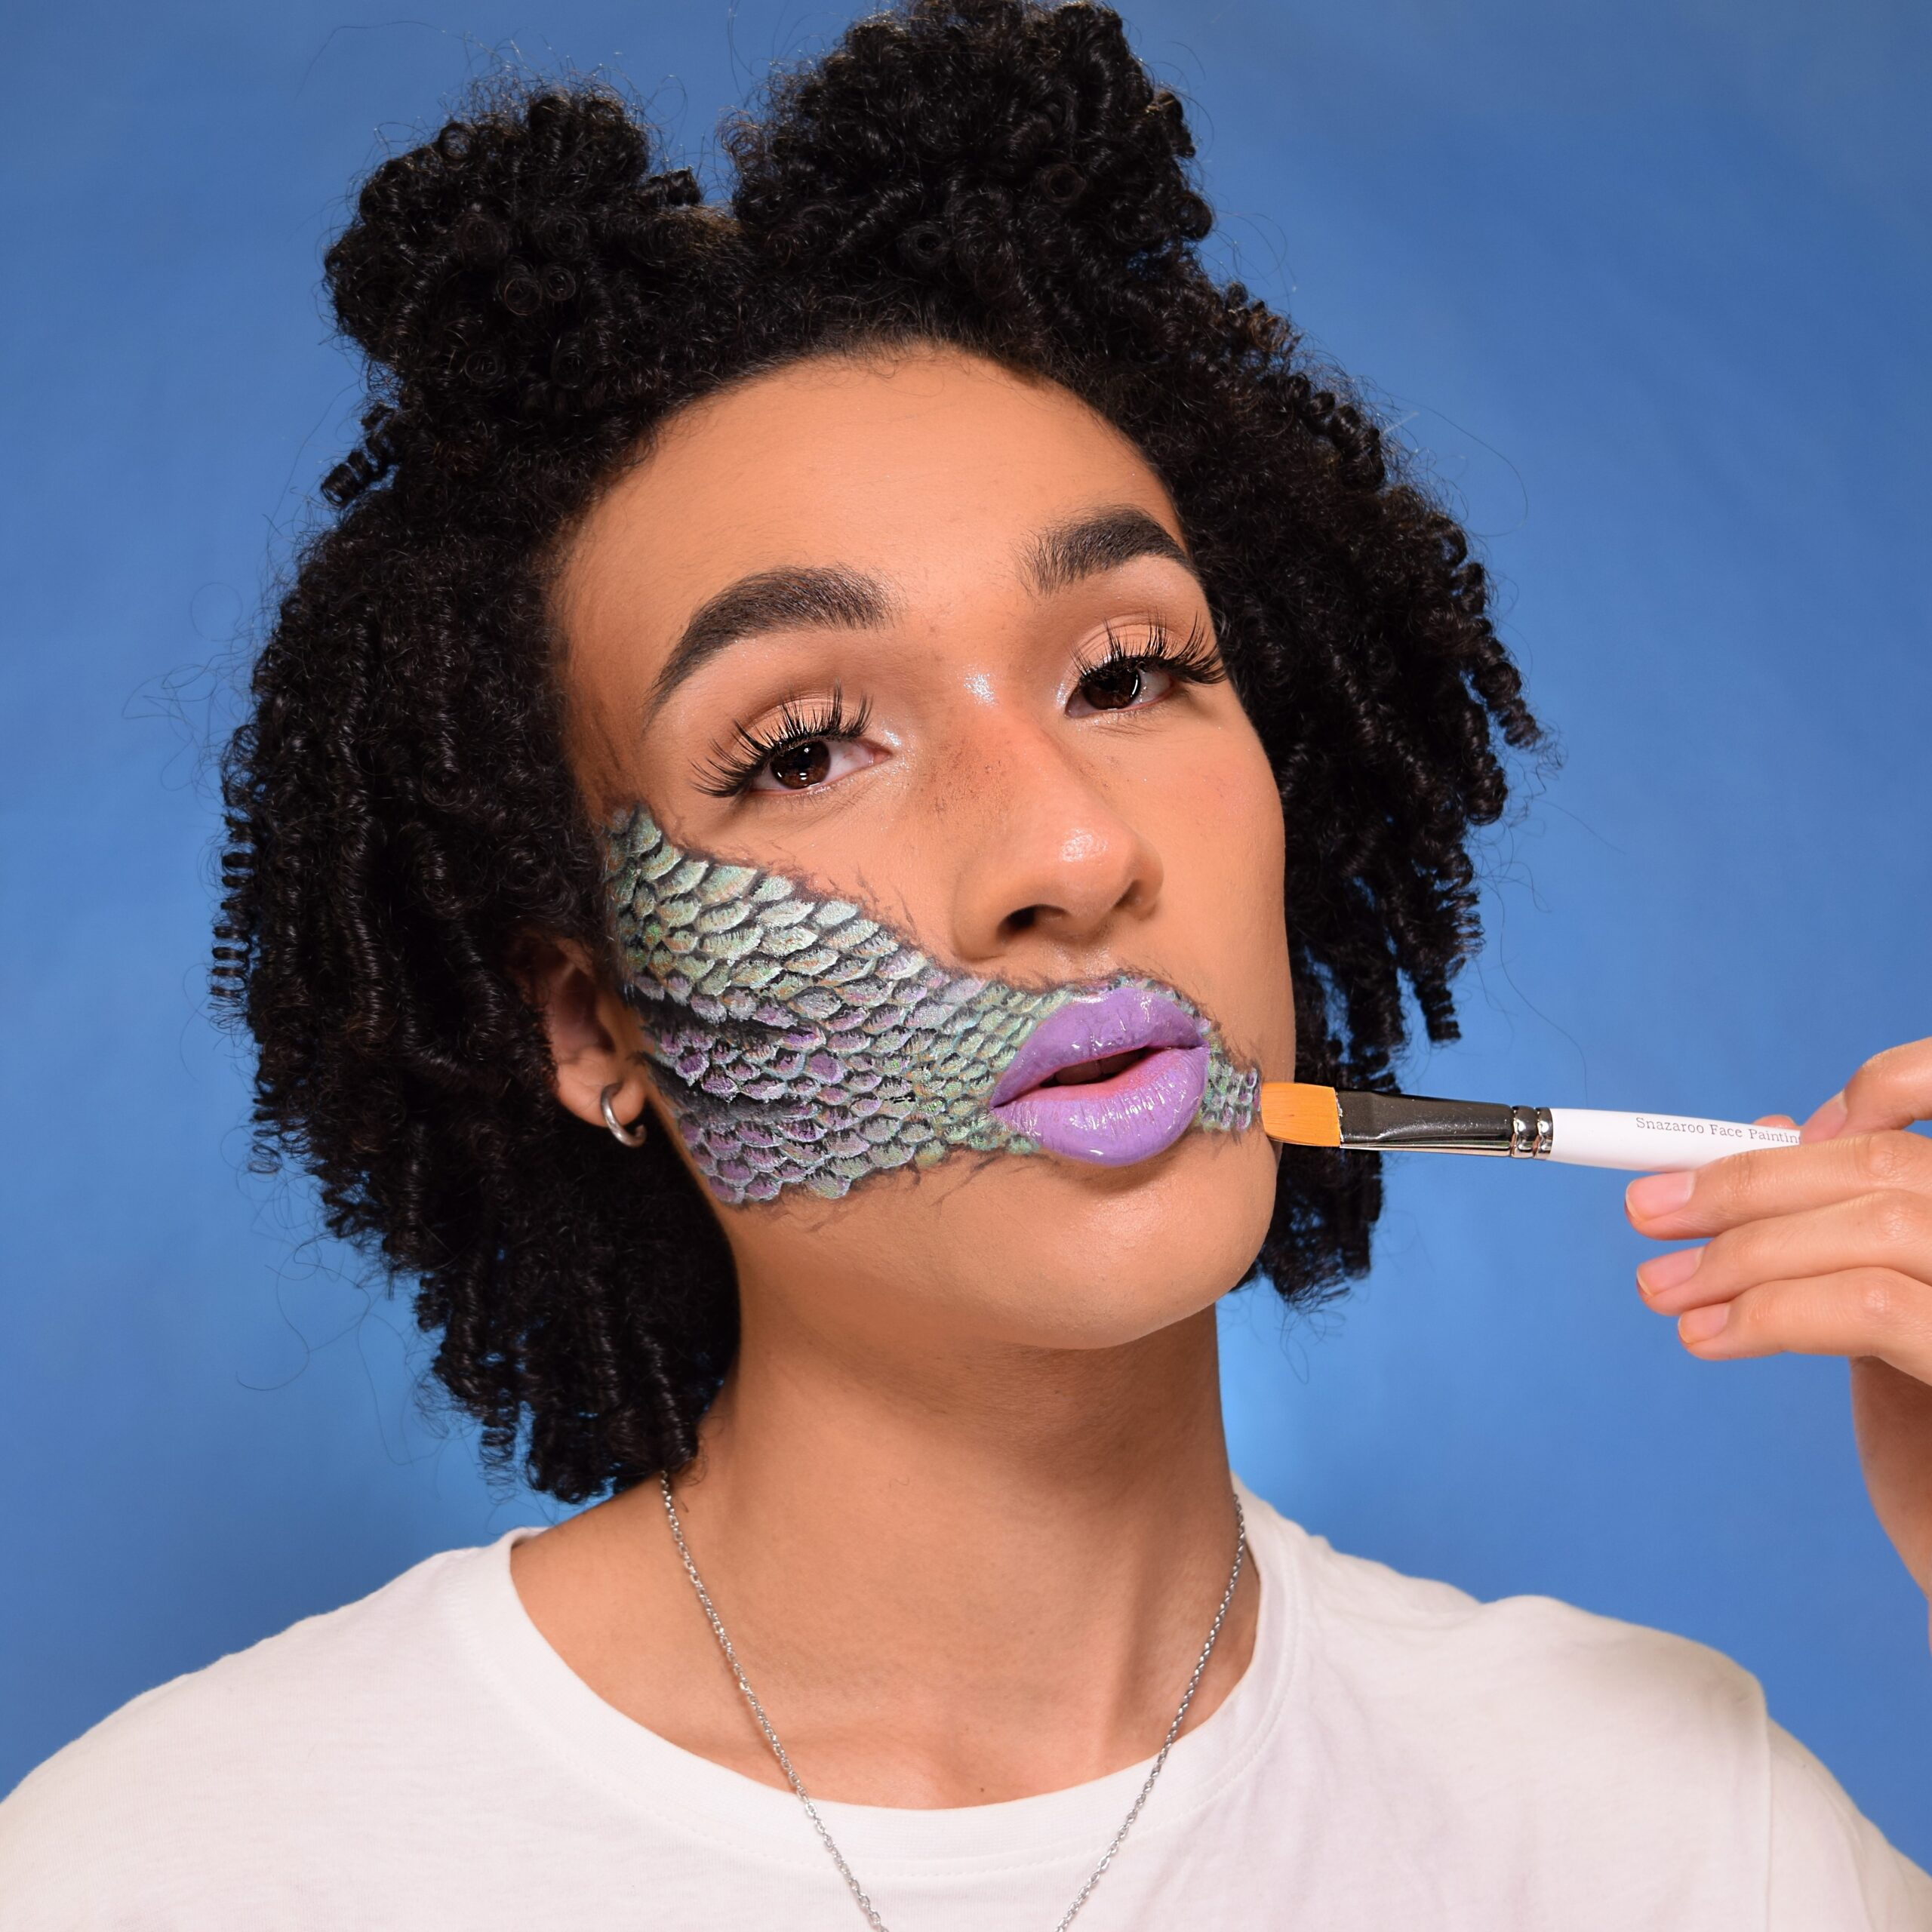 Boy with Mermaid Scales face paint design